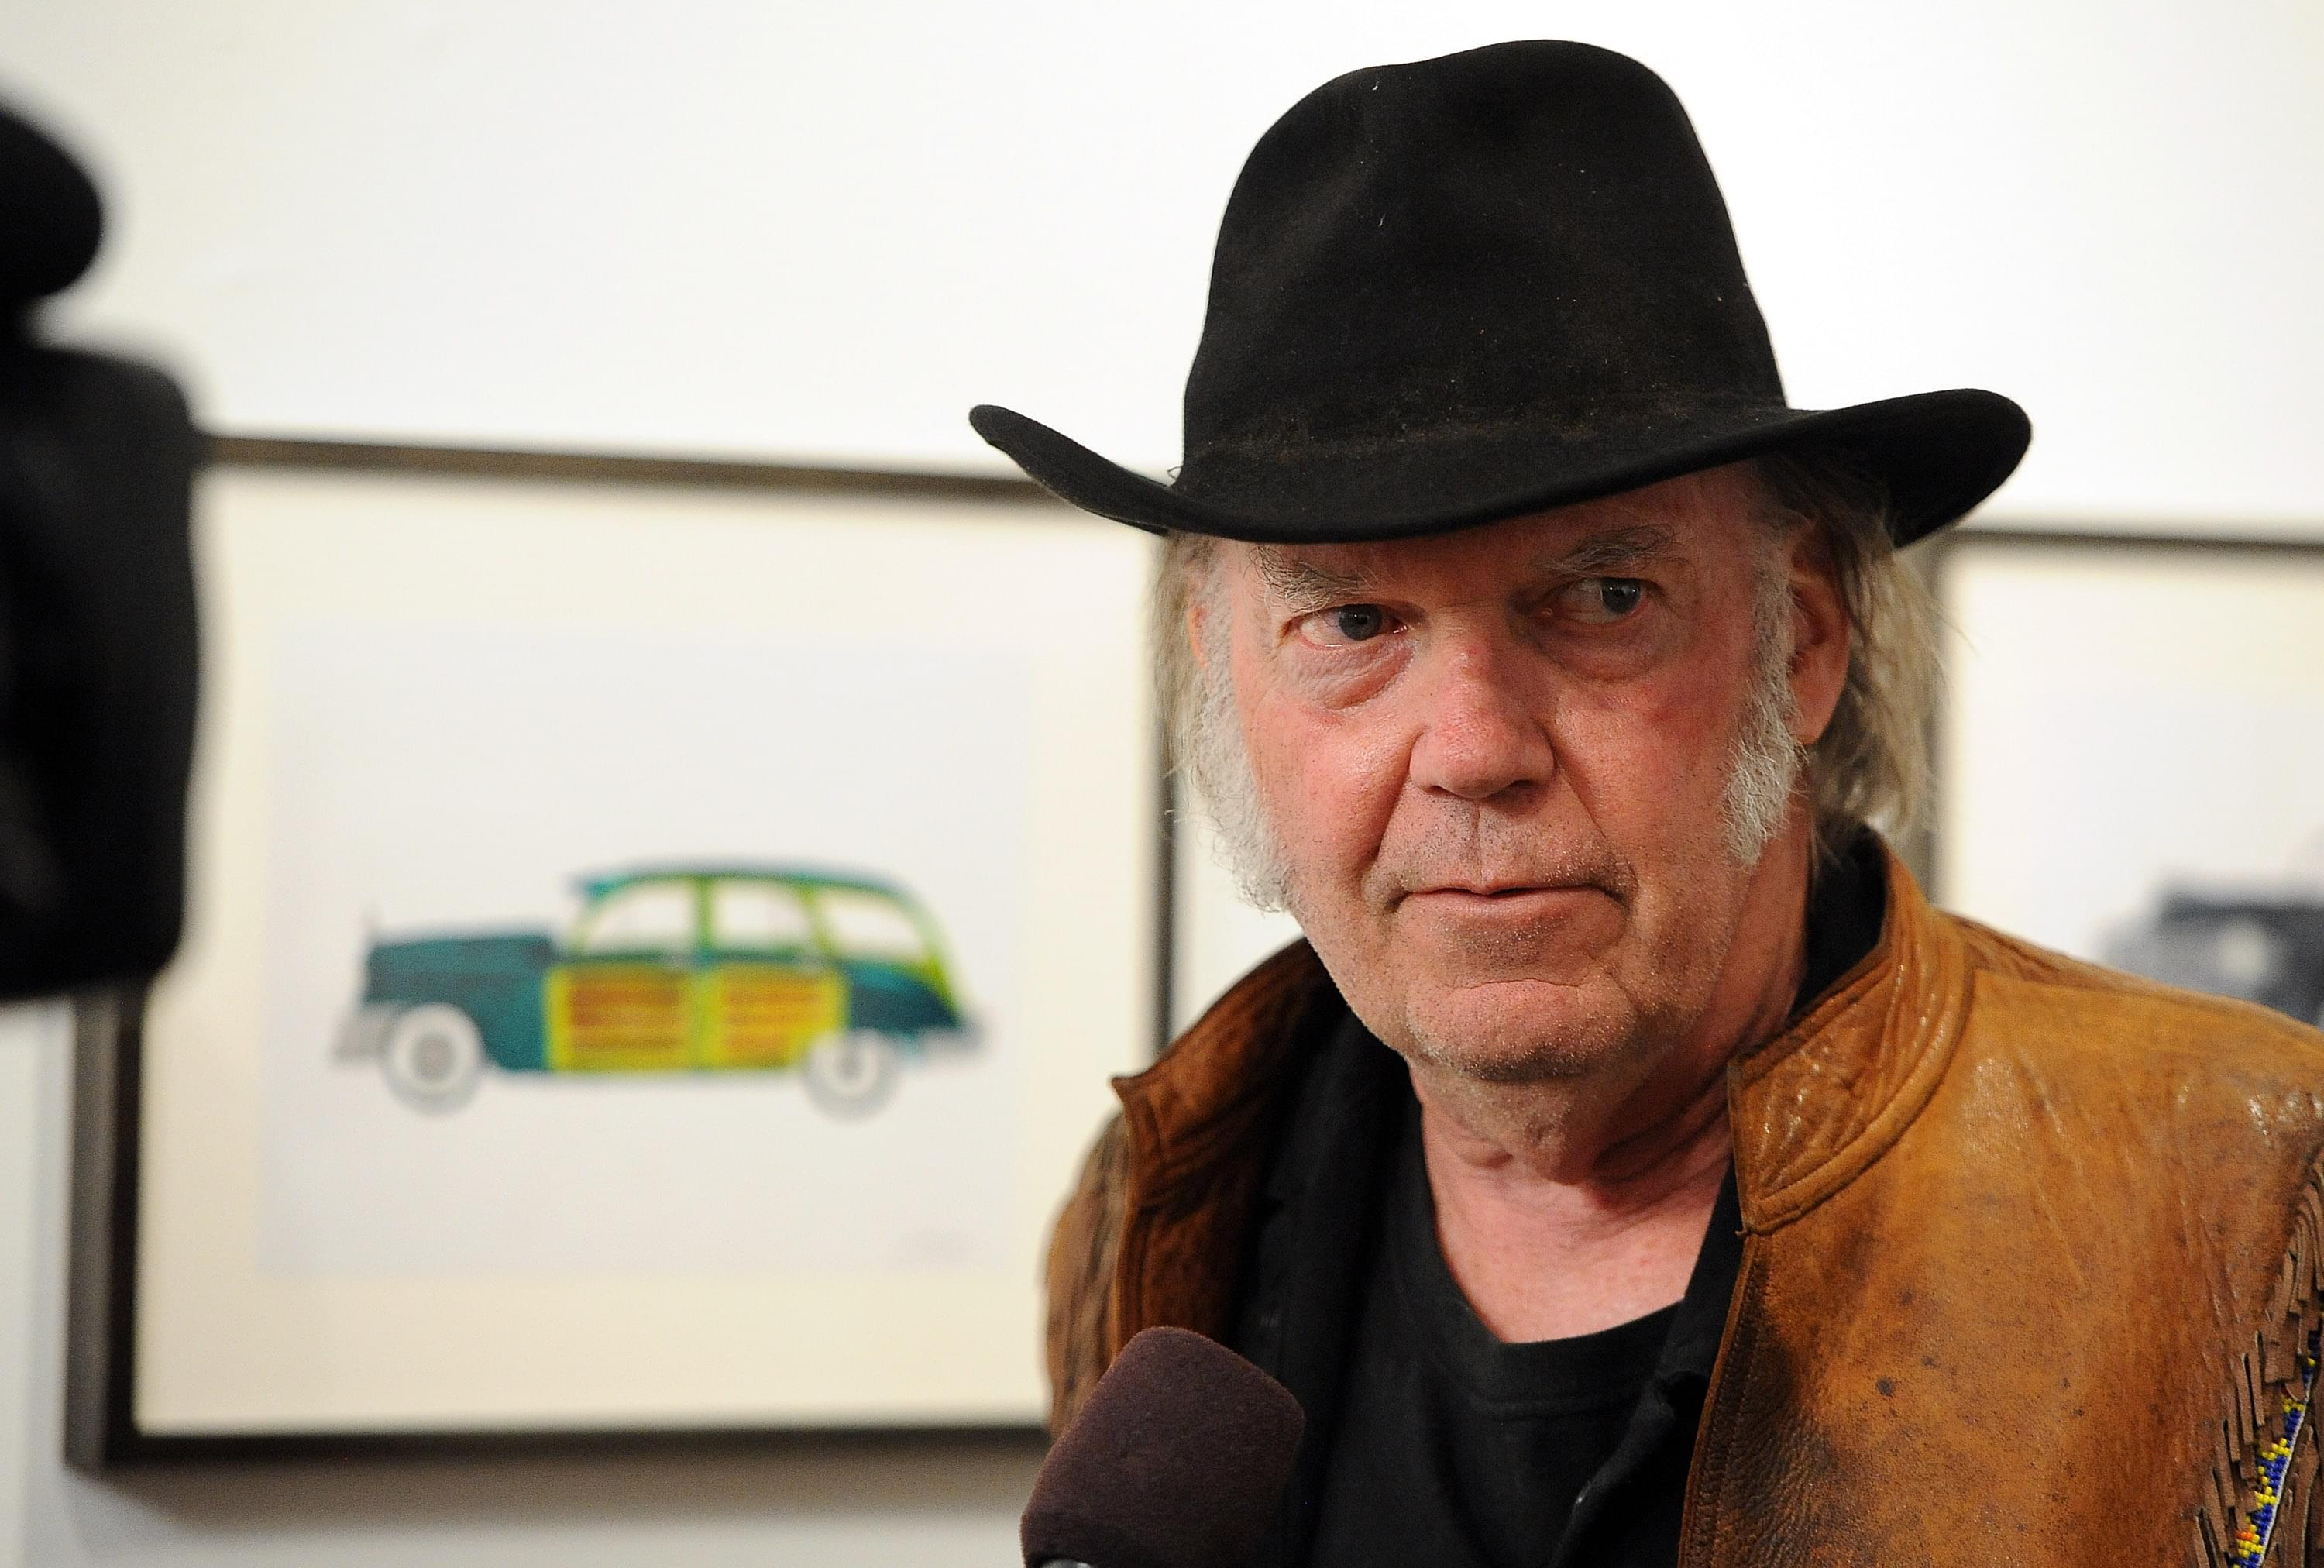 Did Neil Young's Marijuana Use Make It Harder For Him To Become A U.S. Citizen?